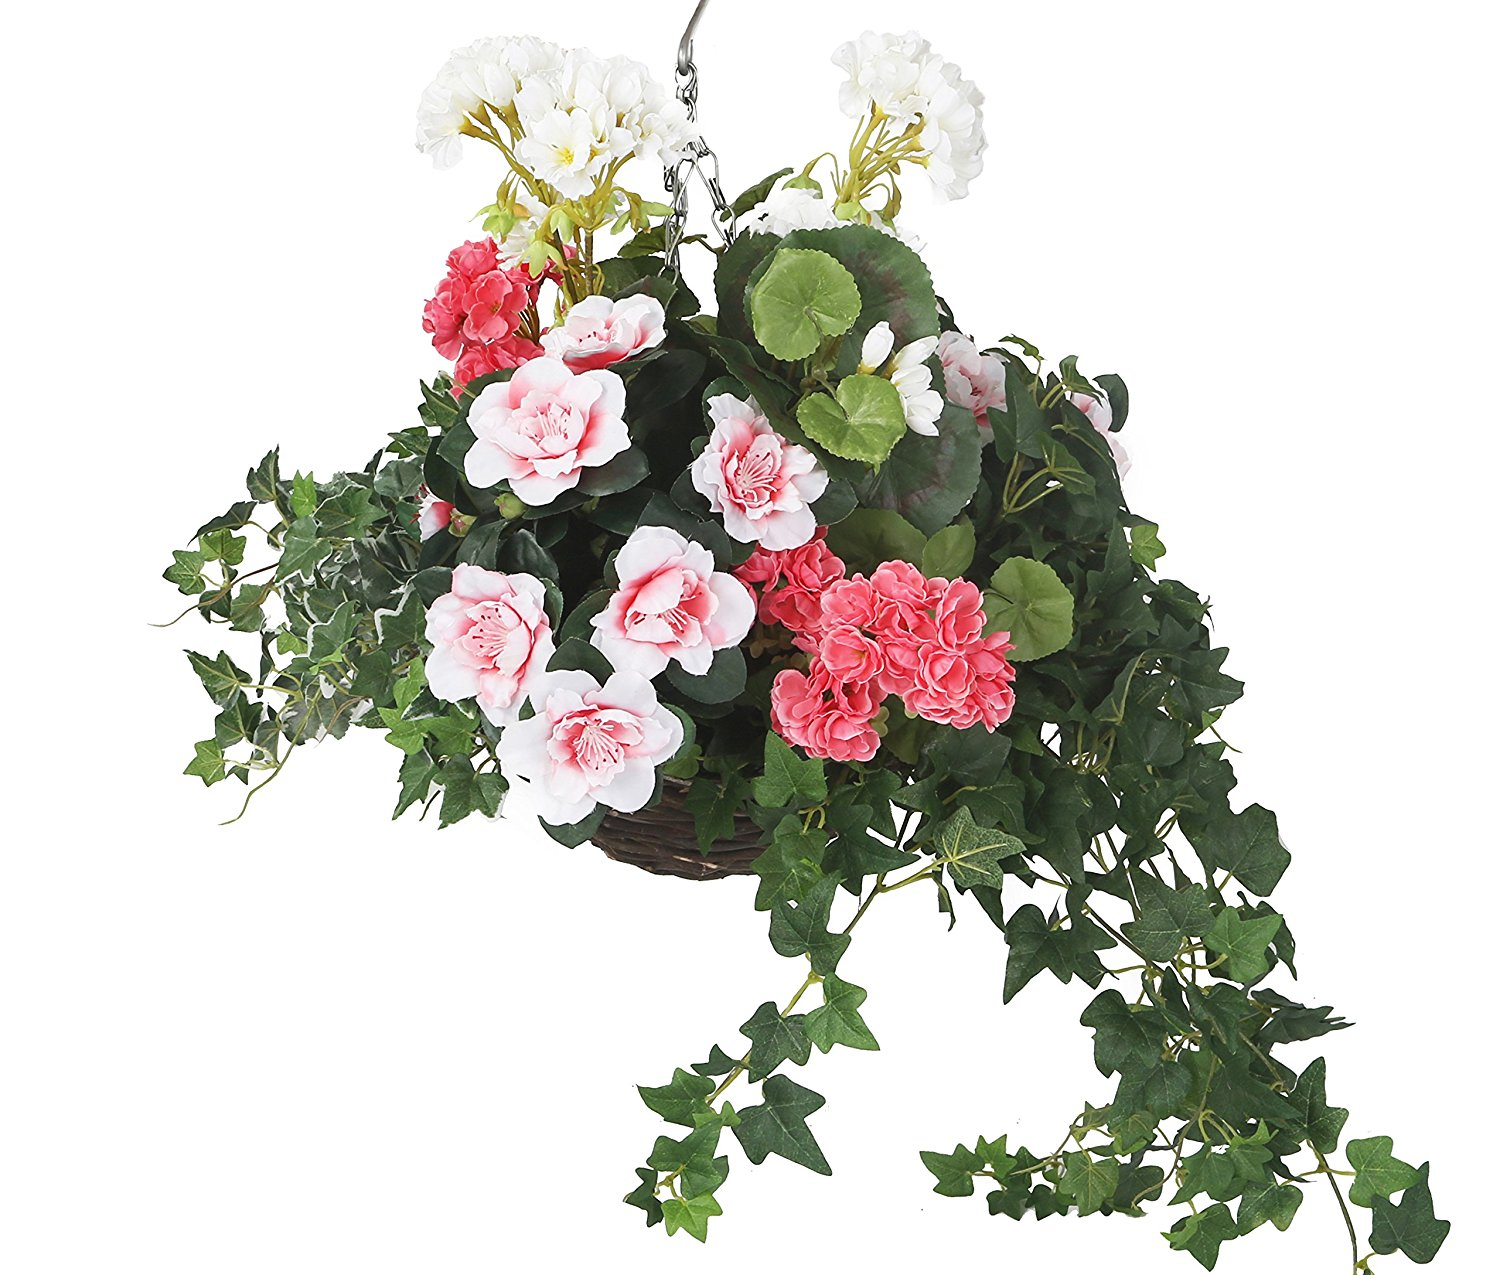 Flowers and foliage artficial hanging basket